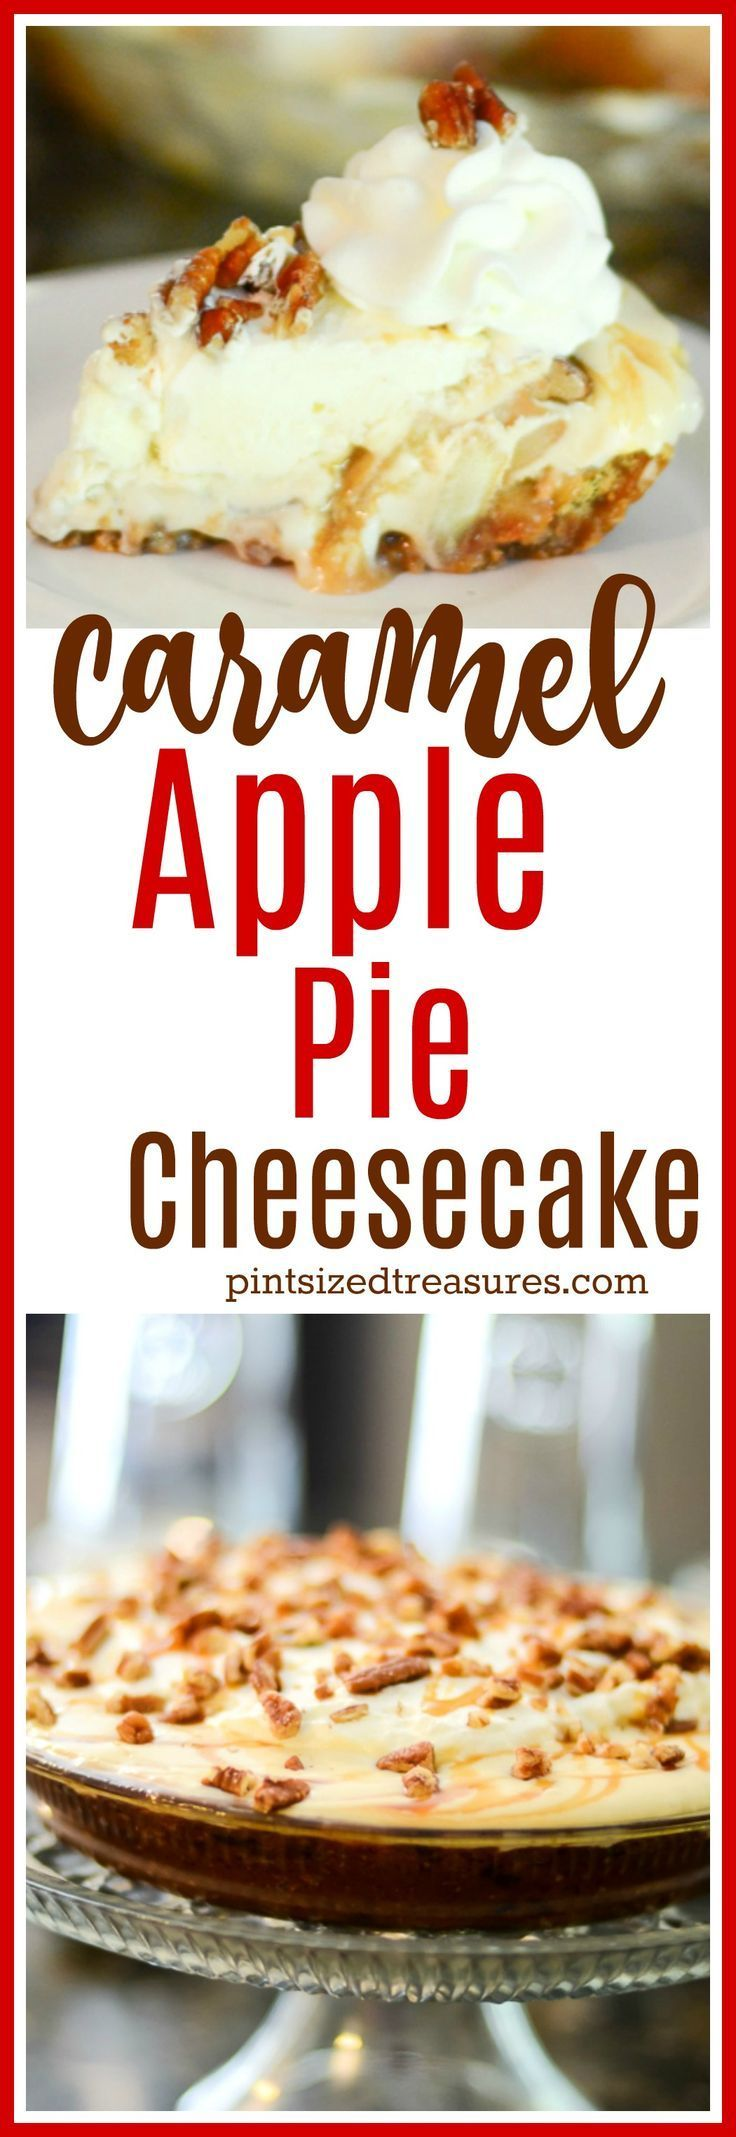 Caramel Apple Pie Cheesecake has an apple cookie crumb crust! Layers of apples and  creamy cheesecake are topped with caramel to create a perfect dessert!